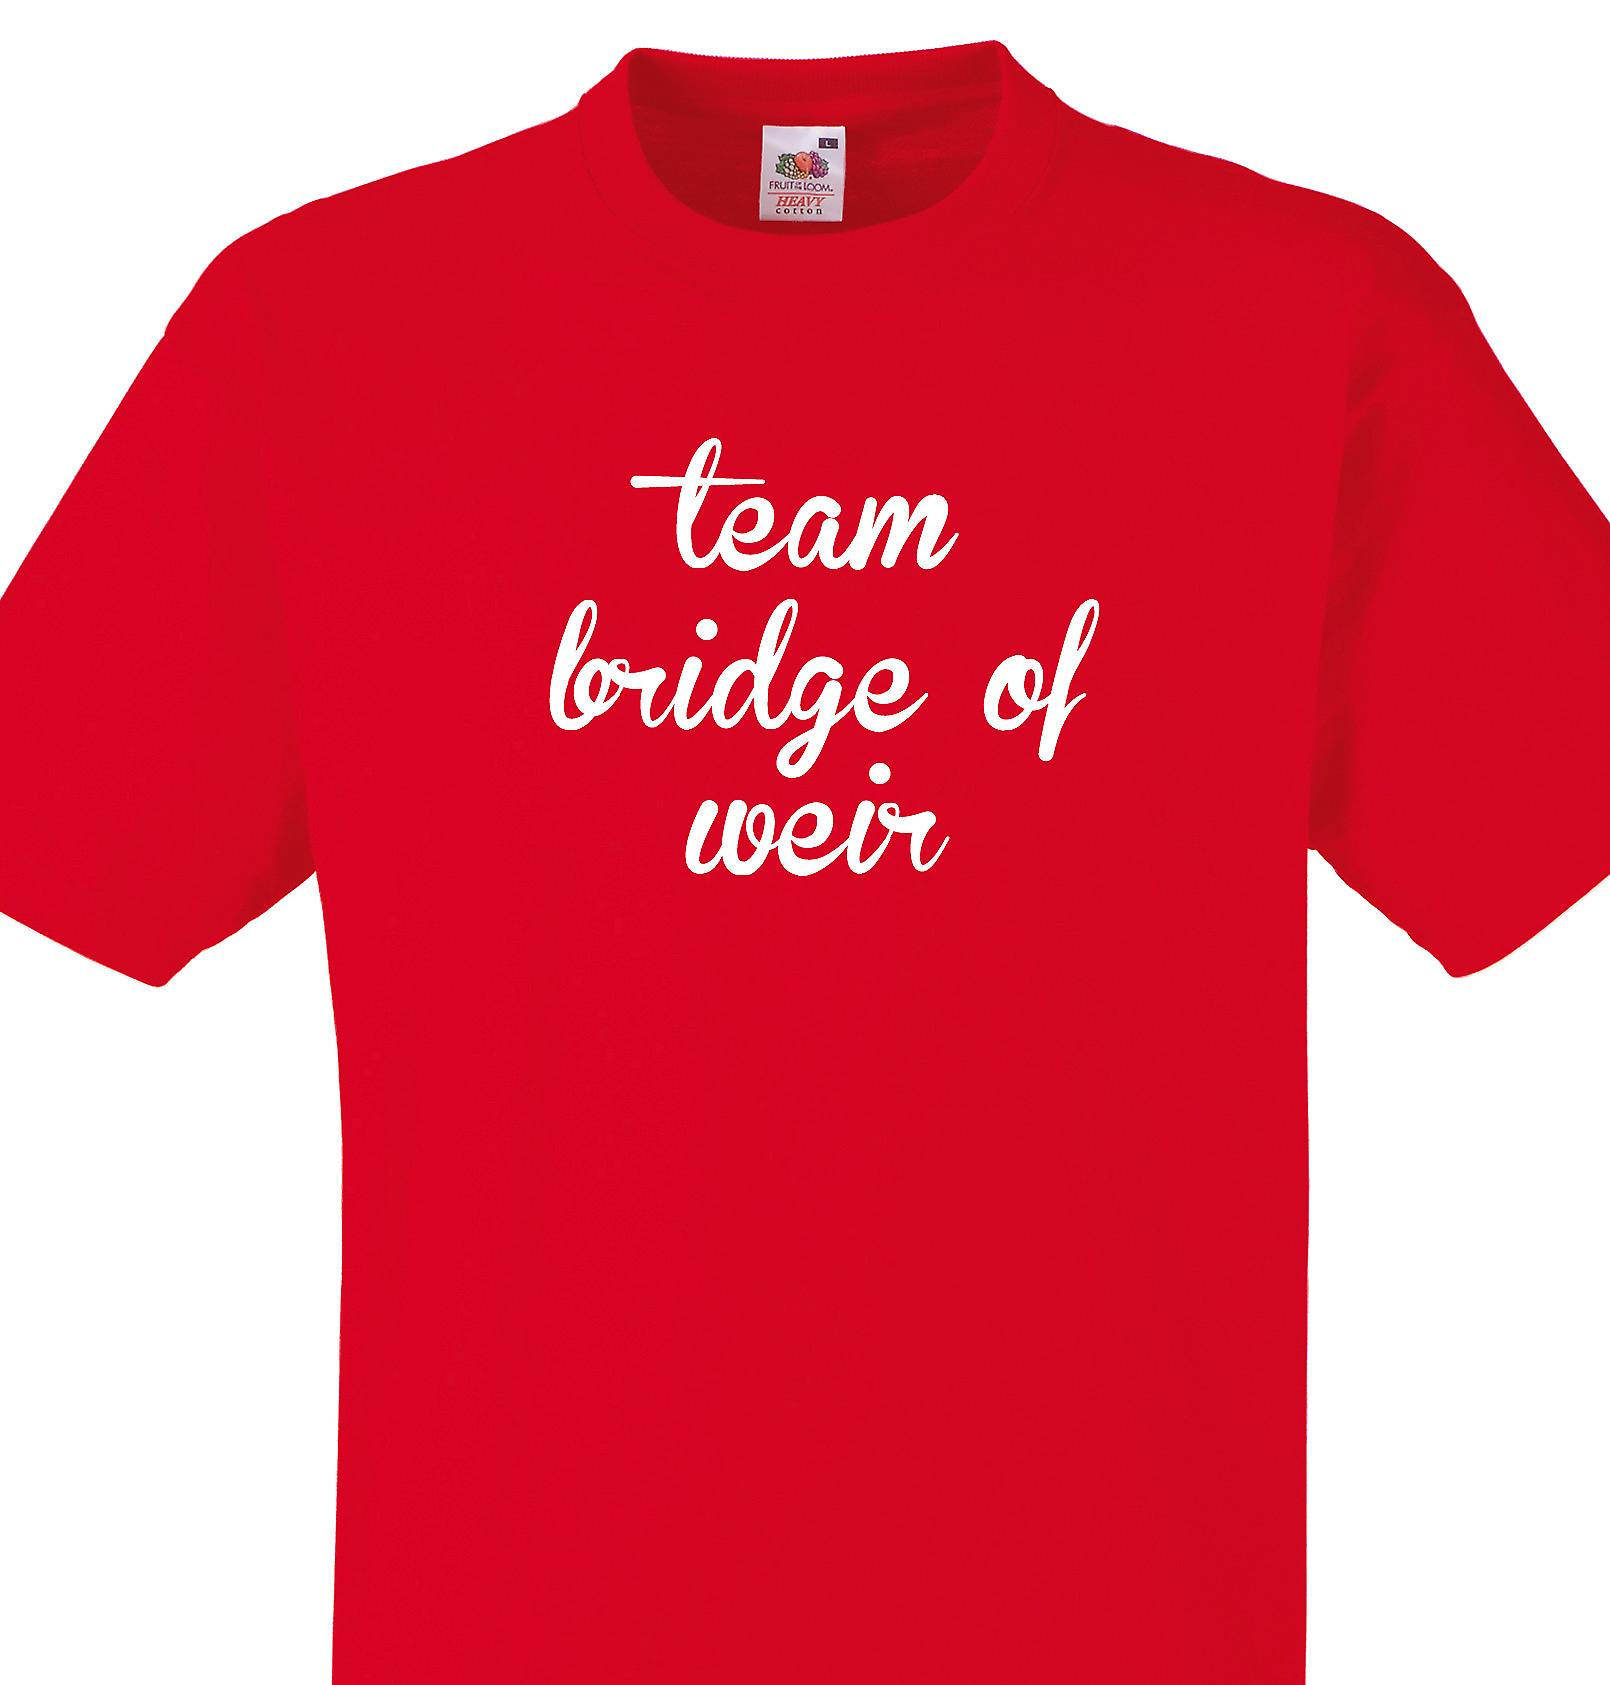 Team Bridge of weir Red T shirt